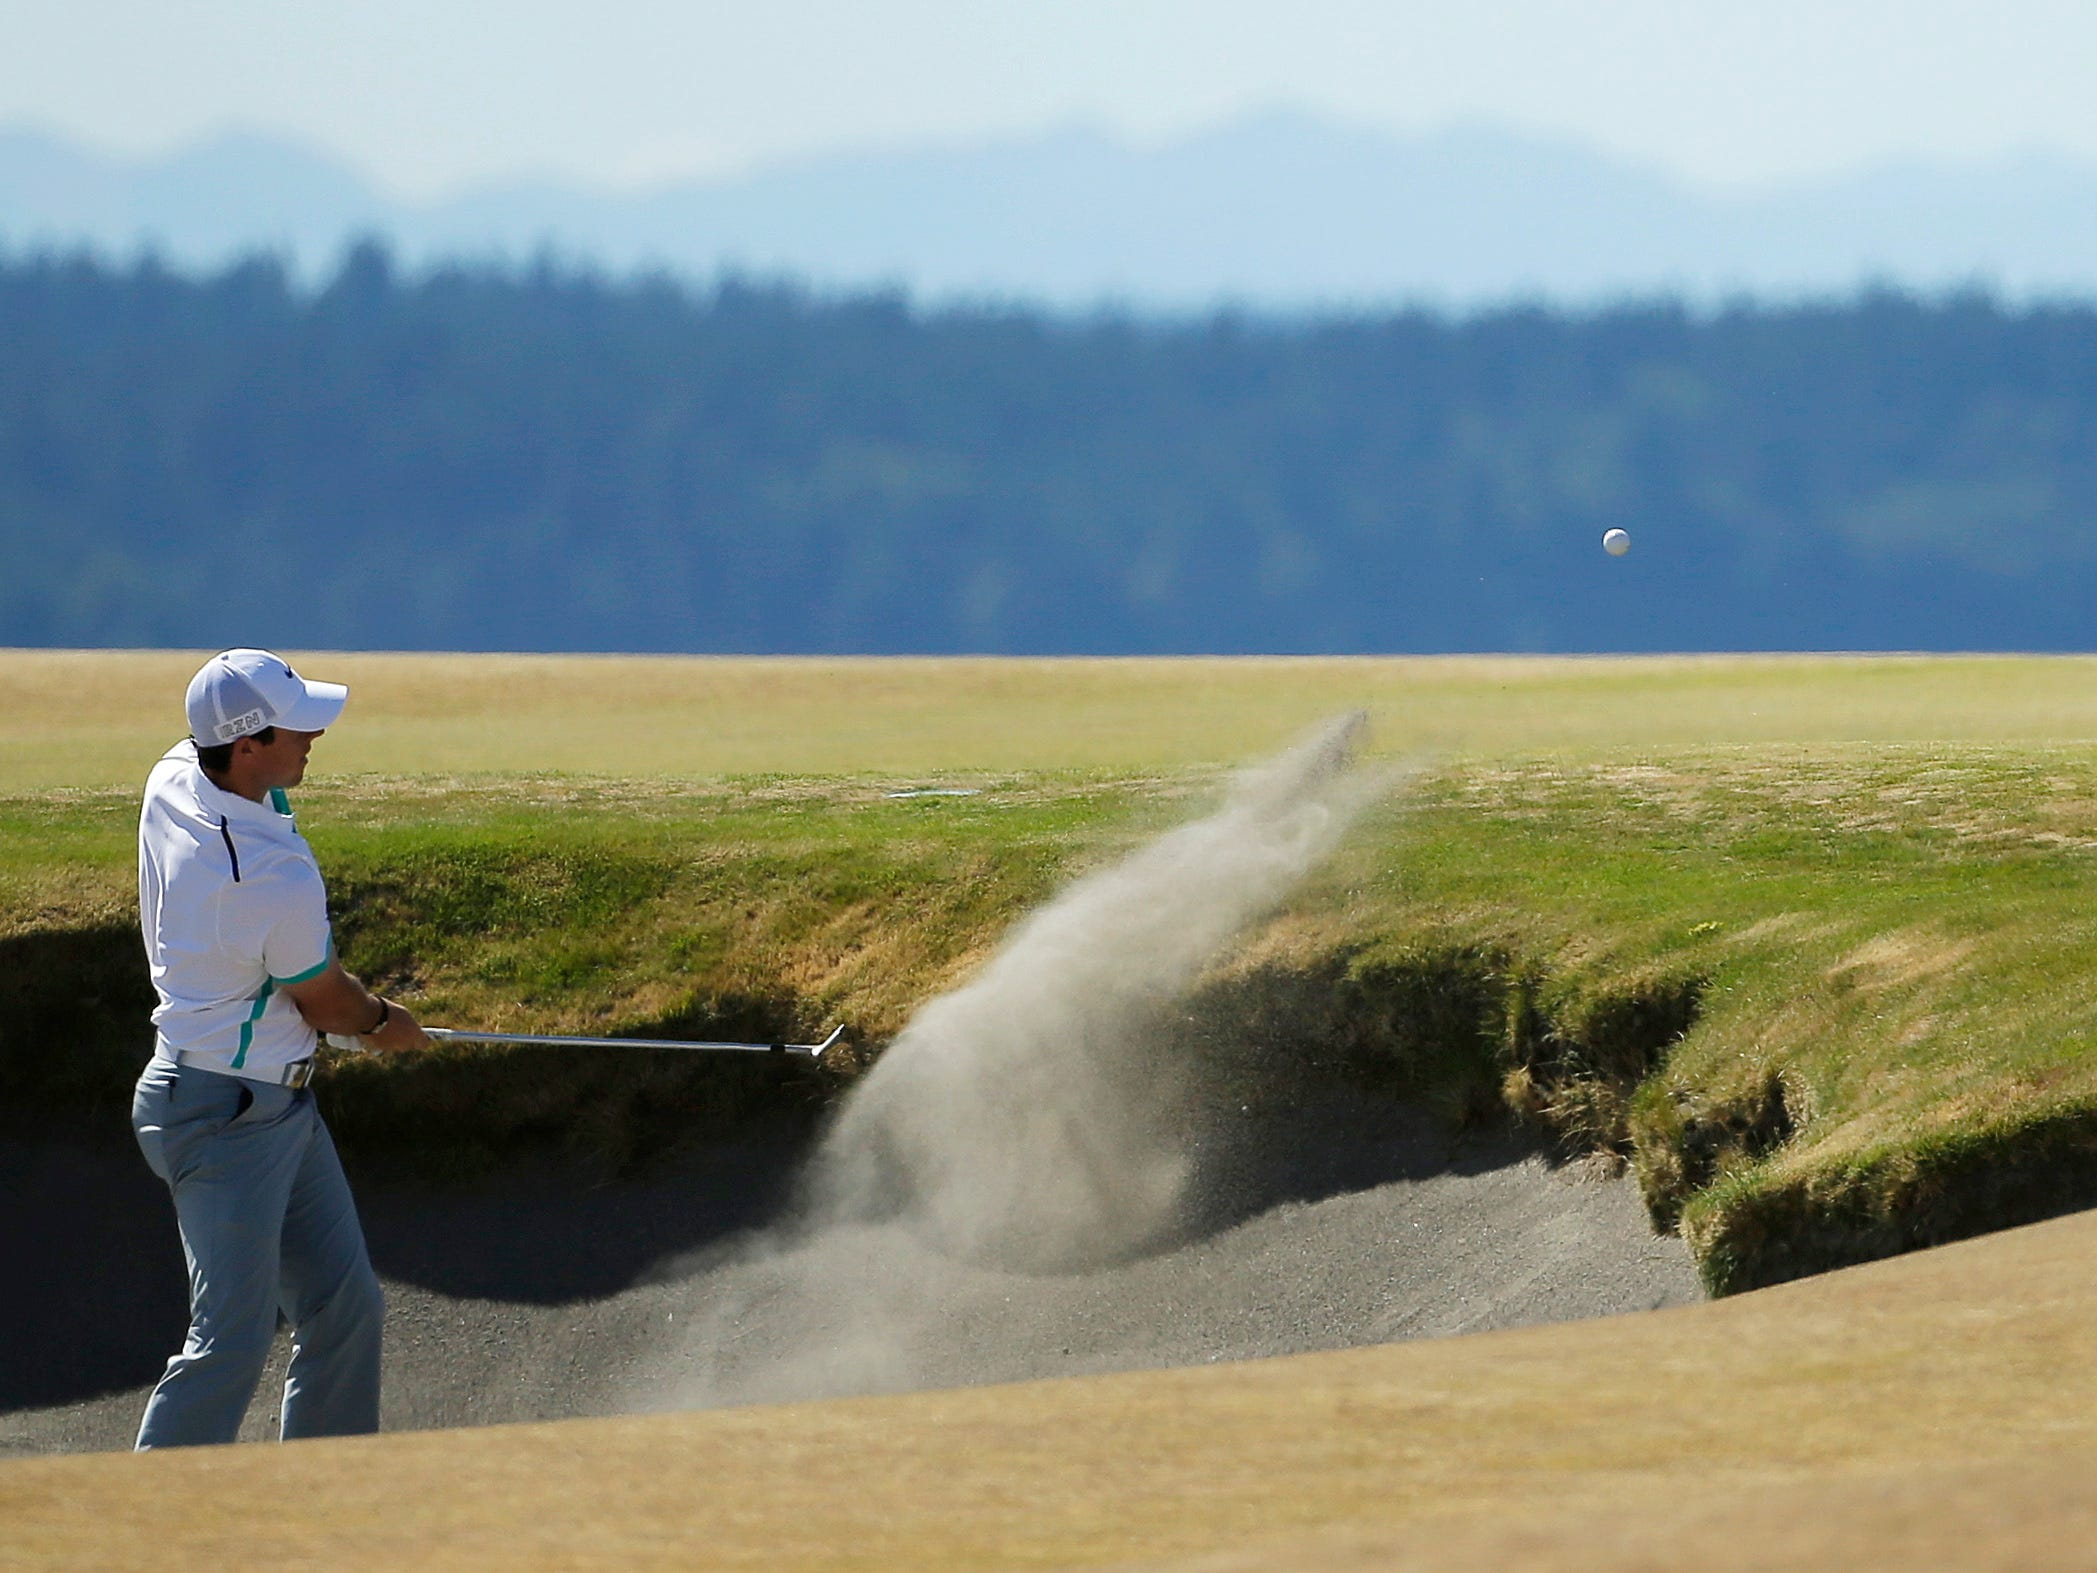 Rory McIlroy, of Northern Ireland, hits out of the bunker on the fifth hole during the second round of the U.S. Open golf tournament at Chambers Bay on Friday, June 19, 2015 in University Place, Wash. (AP Photo/Ted S. Warren)